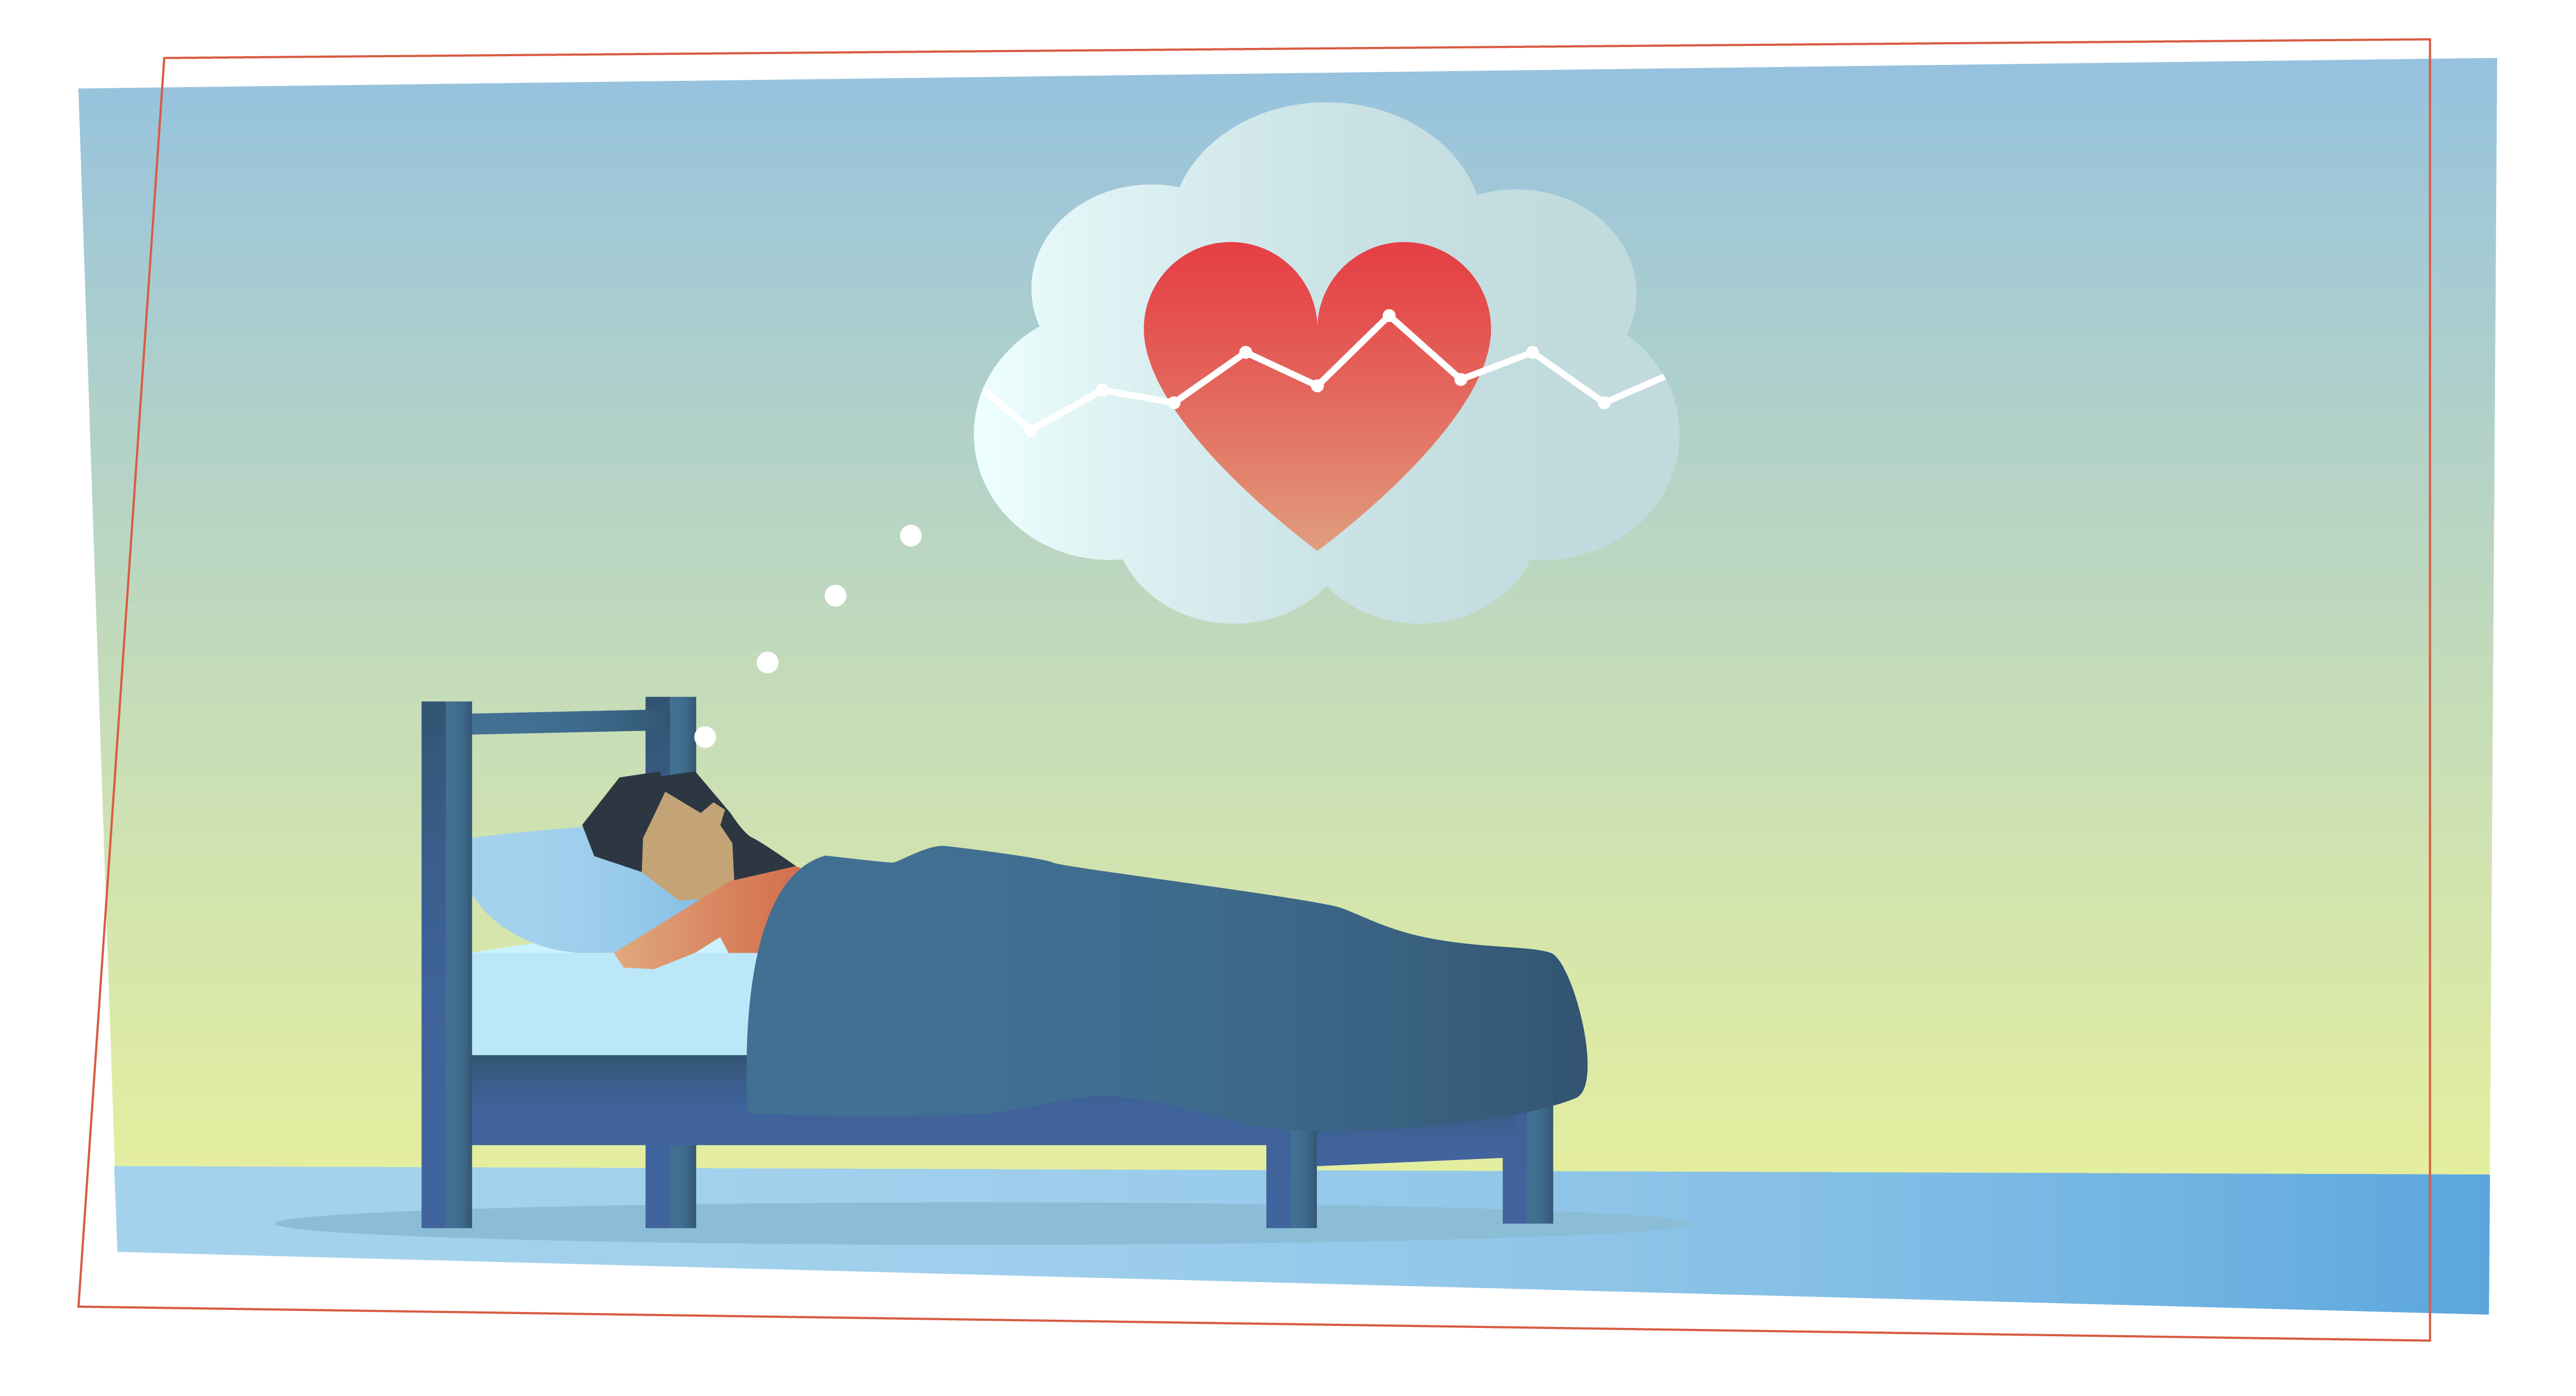 a woman is asleep in a bed and is dreaming of a heart with a cash flow line across it